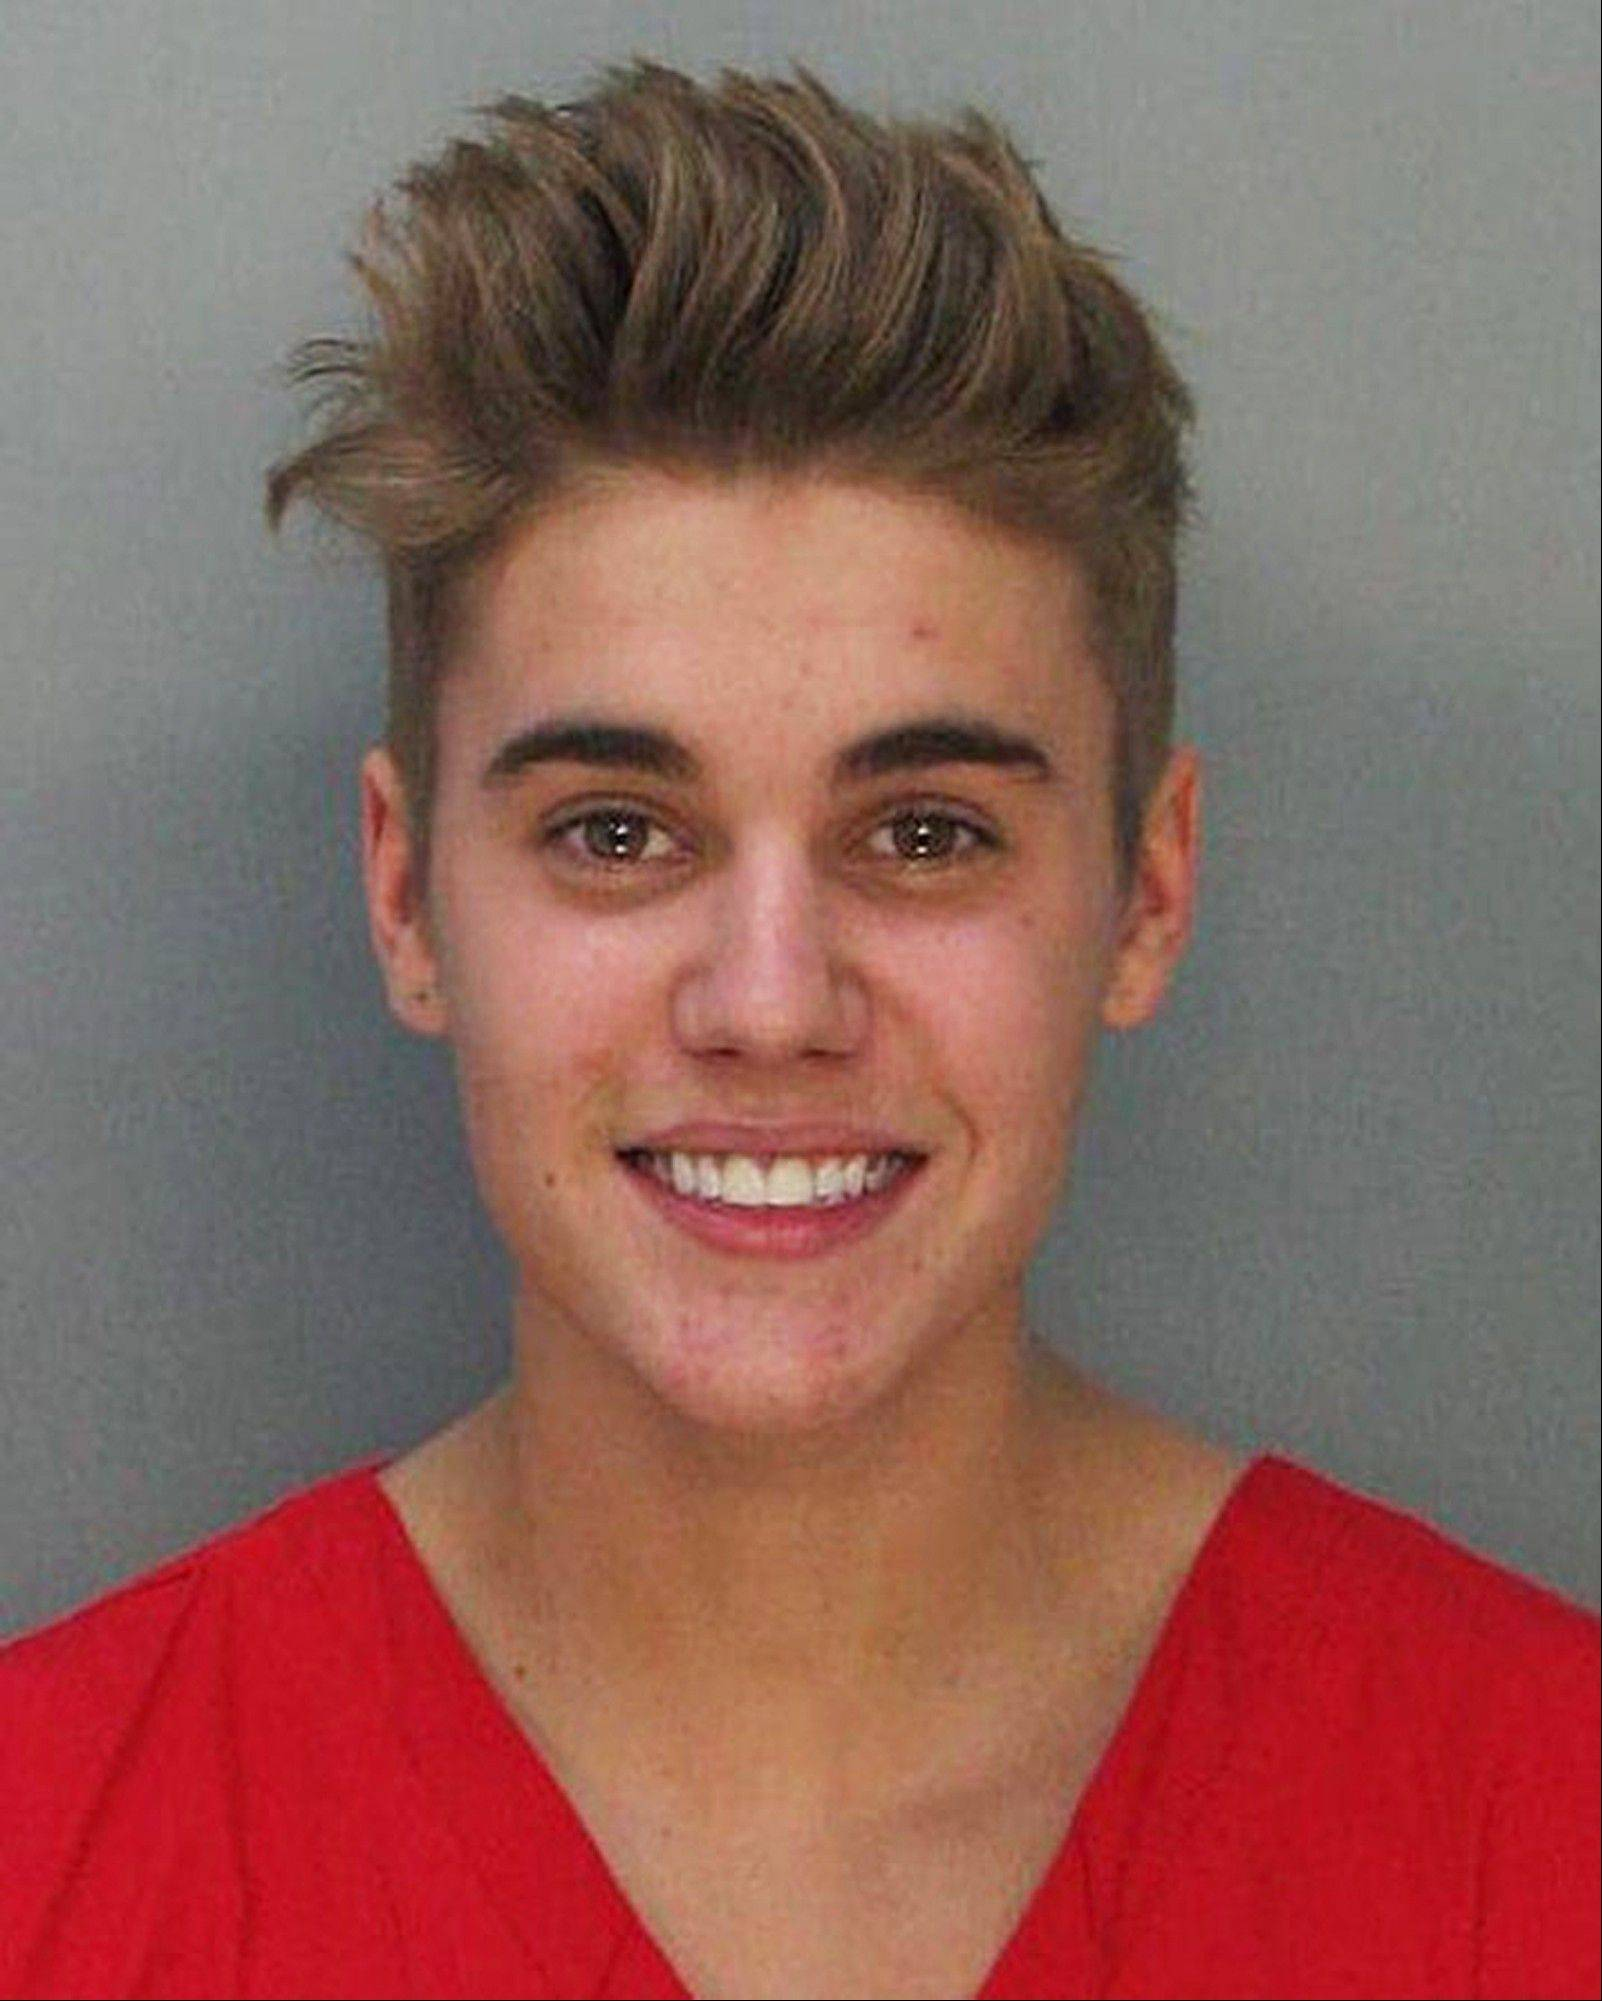 This police booking mug made available by the Miami Dade County Corrections Department shows pop star Justin Bieber on Thursday. Bieber and singer Khalil were arrested on charges of allegedly drag-racing on a Miami Beach Street.